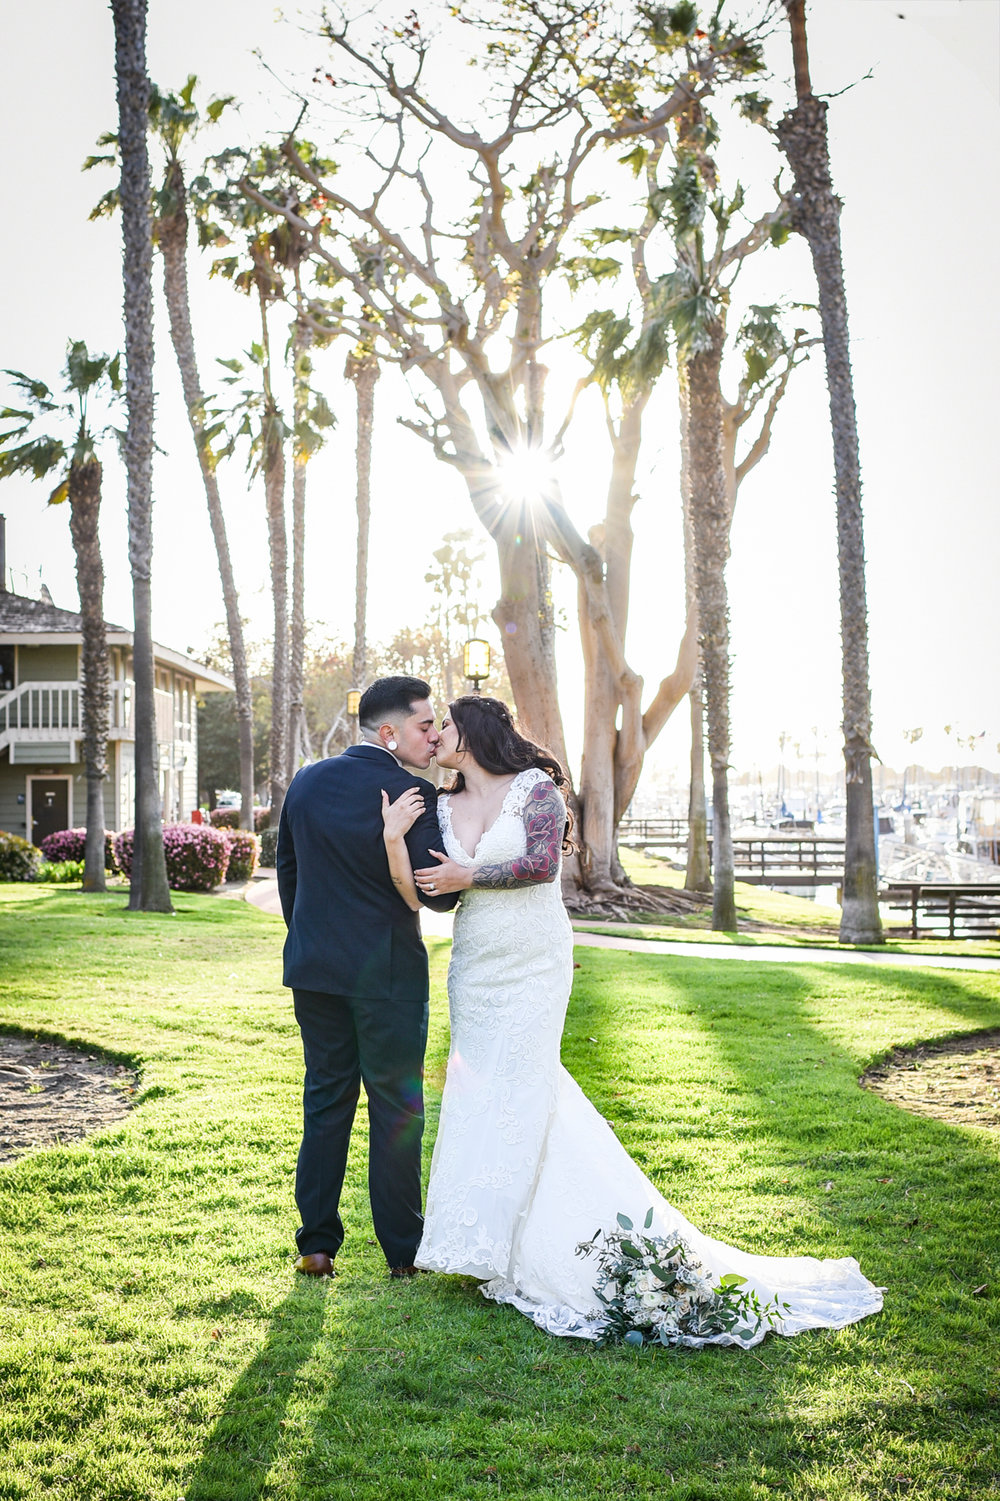 Christina & Memo San Diego, CA Marina Village Wedding